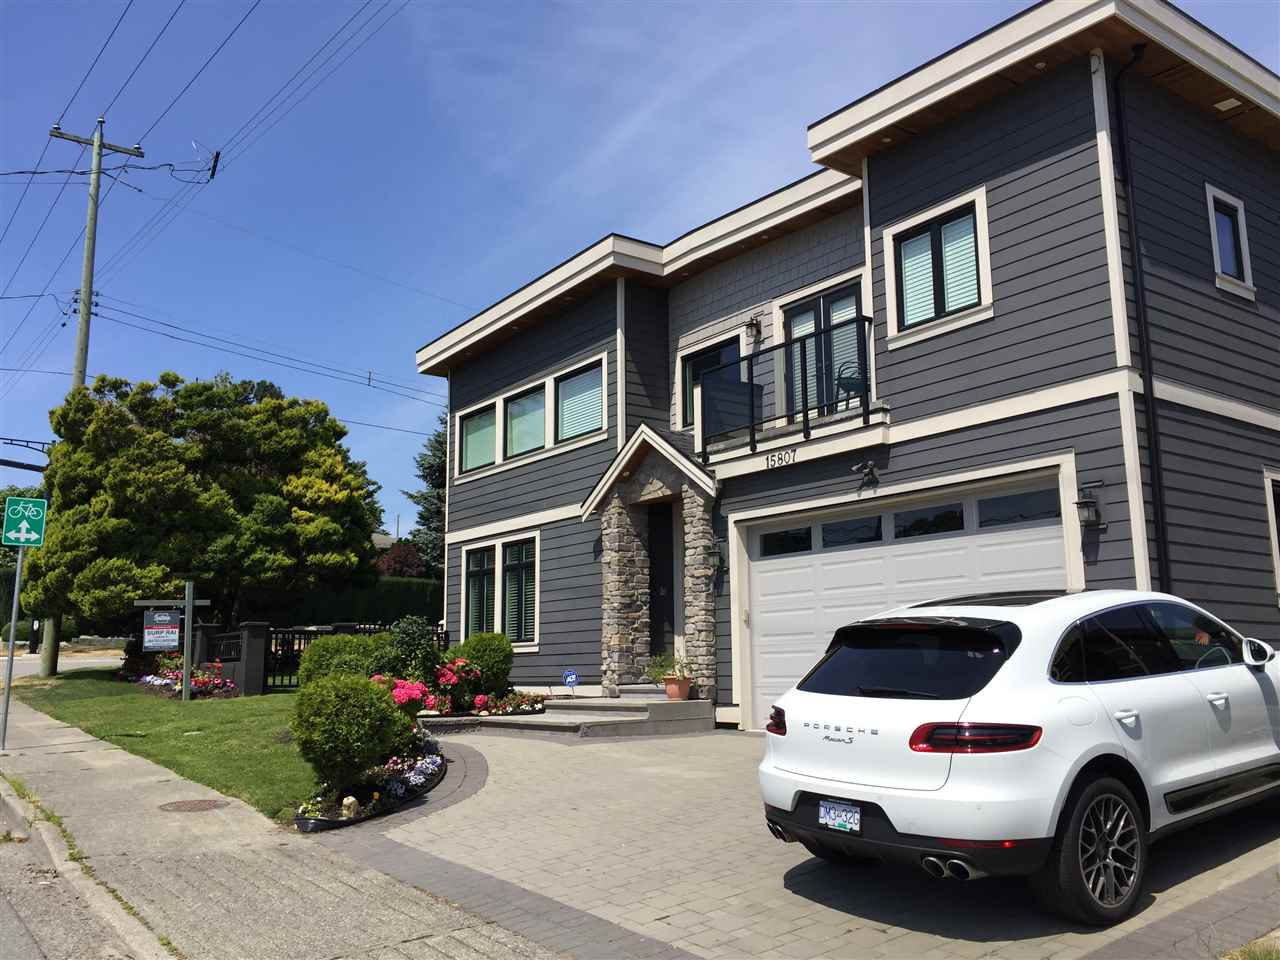 Welcome to this premium custom built 4094 sf home. Total 5 bedrooms (4 with ensuites), 8 washrooms. Lots of natural light, an open concept floor plan with partial southern ocean view. Bright kitchen with accent lighting, granite counters, grand island and stainless steel appliances. Upstairs masterbdrm features a luxury 5 pce bath, walkin closet, private balcony and view of Mount Baker. For your entertaining, the basement boasts a rec-room with wetbar and a media-room. All this + a LEGAL 1 bdrm bsmt suite with laundry & private entrance. Just a short walk to the beach. Near all amenities and the Peace Arch French Immersion elementary school. Call for your private viewing.